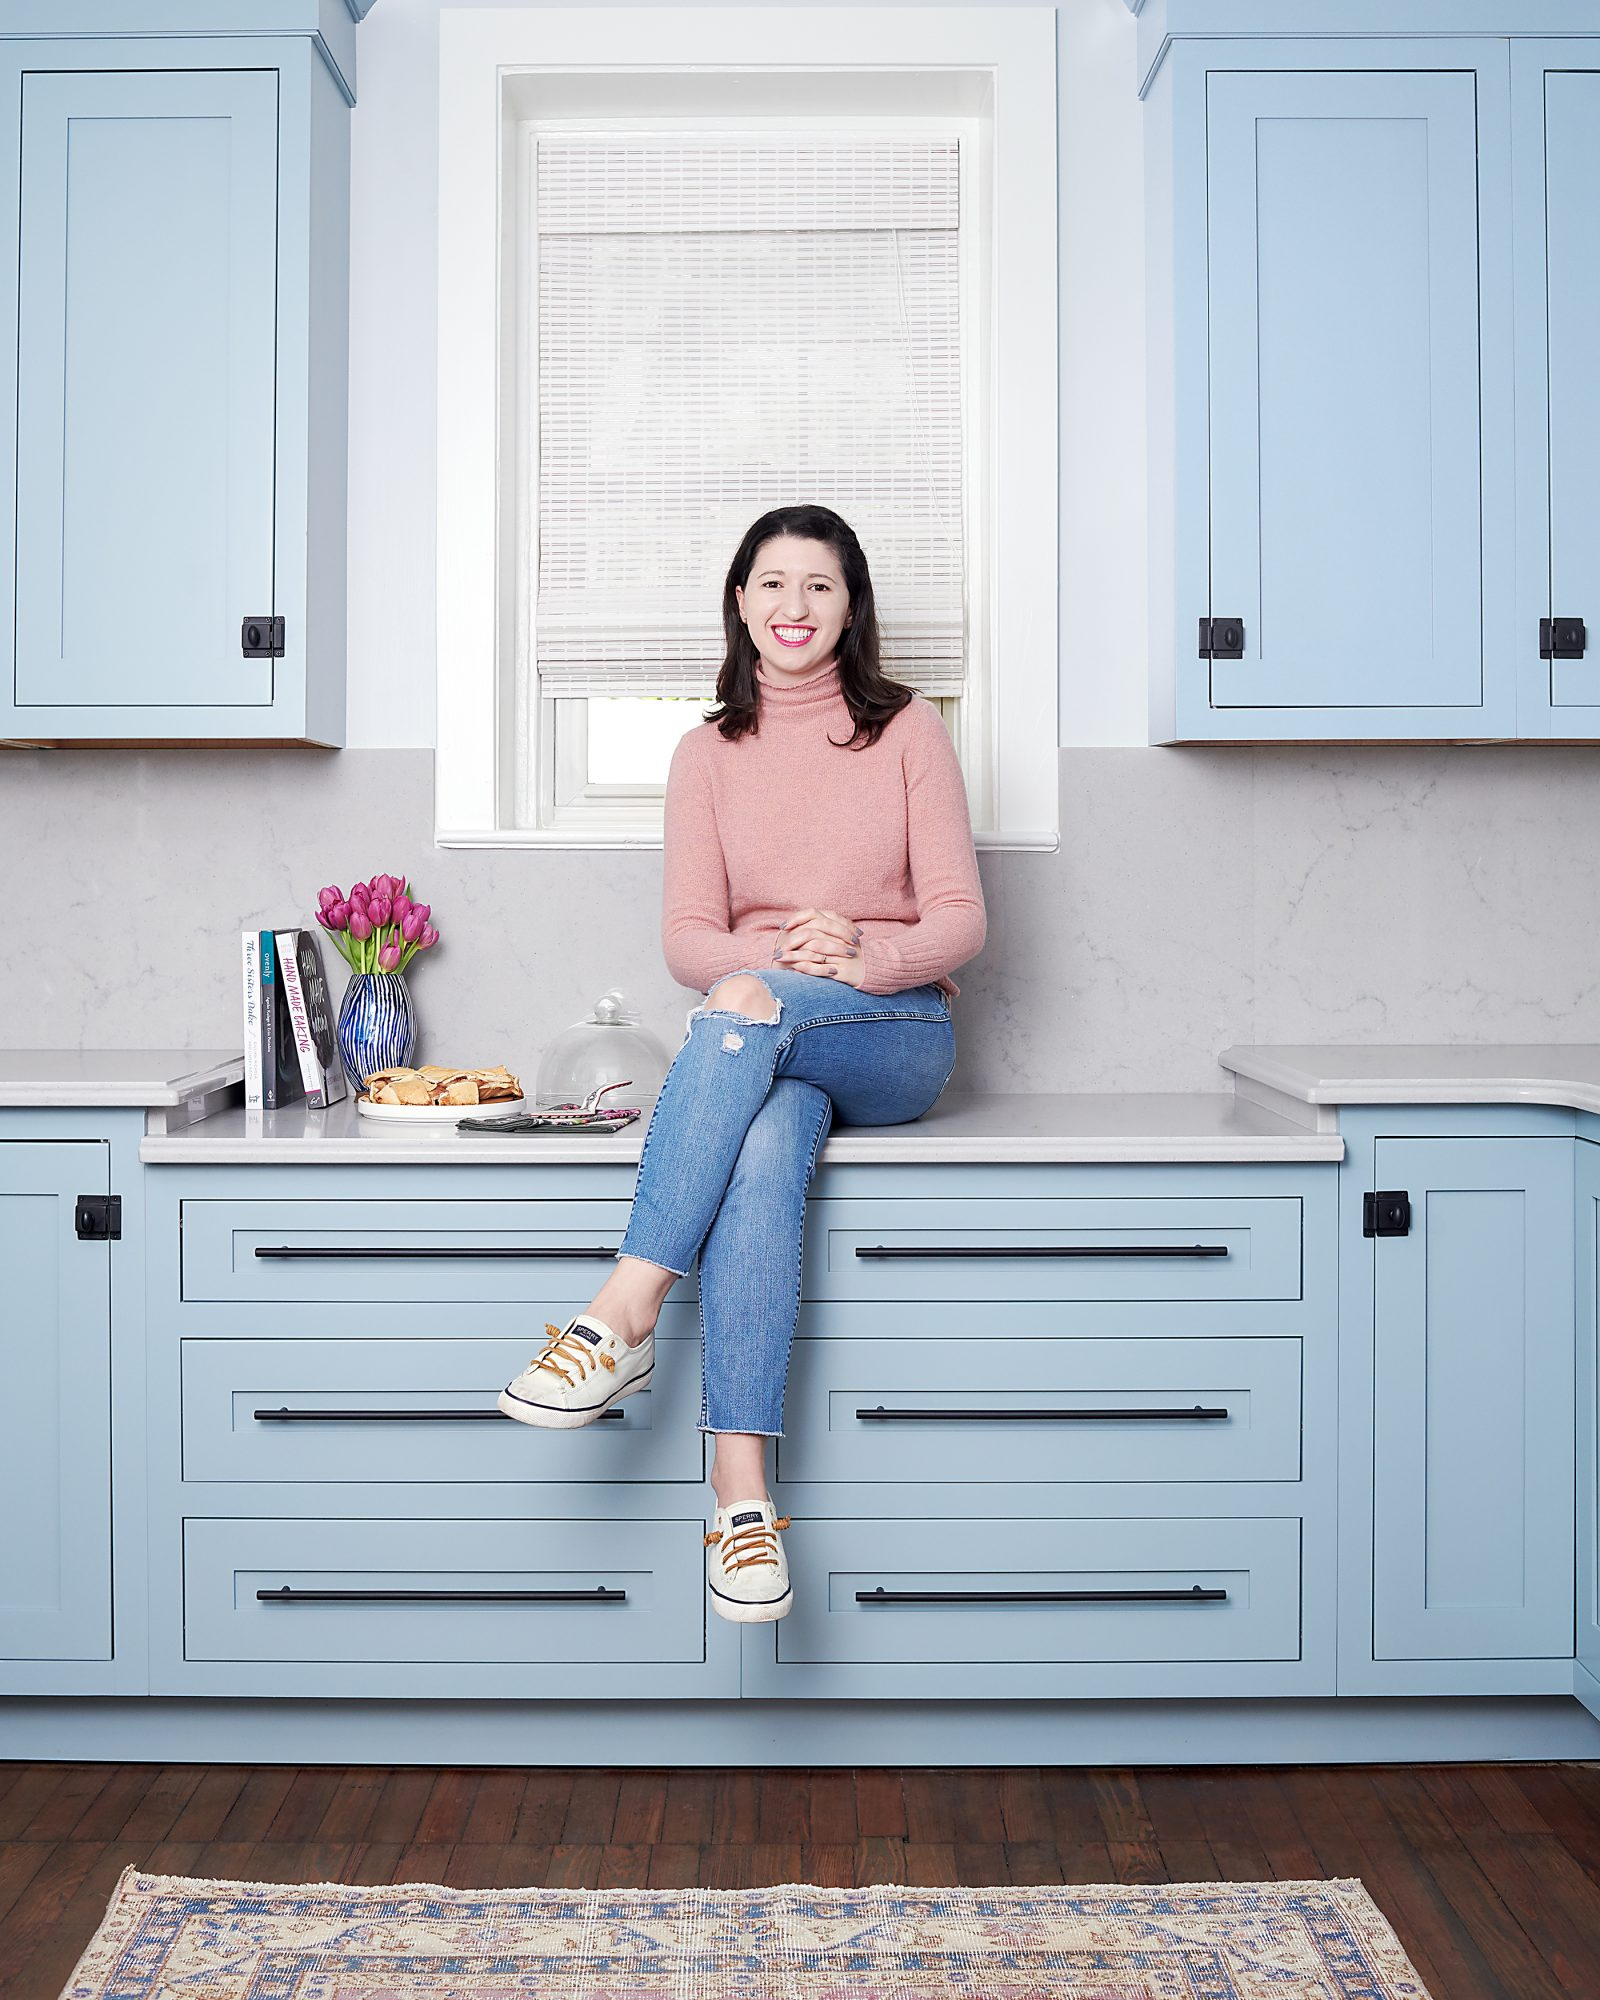 michelle gage sitting in powder blue kitchen